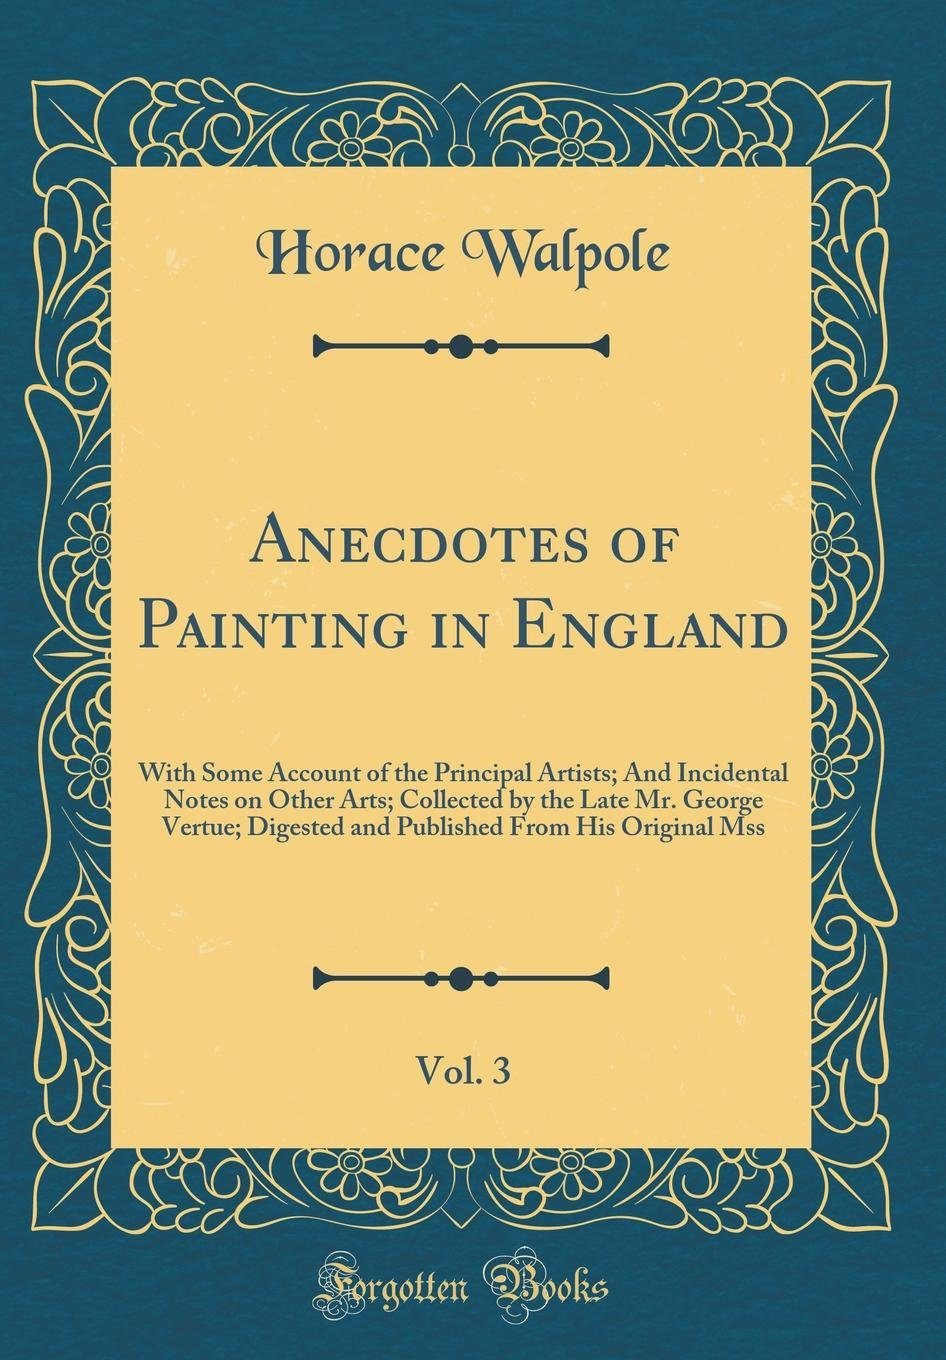 Download Anecdotes of Painting in England, Vol. 3: With Some Account of the Principal Artists; And Incidental Notes on Other Arts; Collected by the Late Mr. from His Original Mss (Classic Reprint) ebook